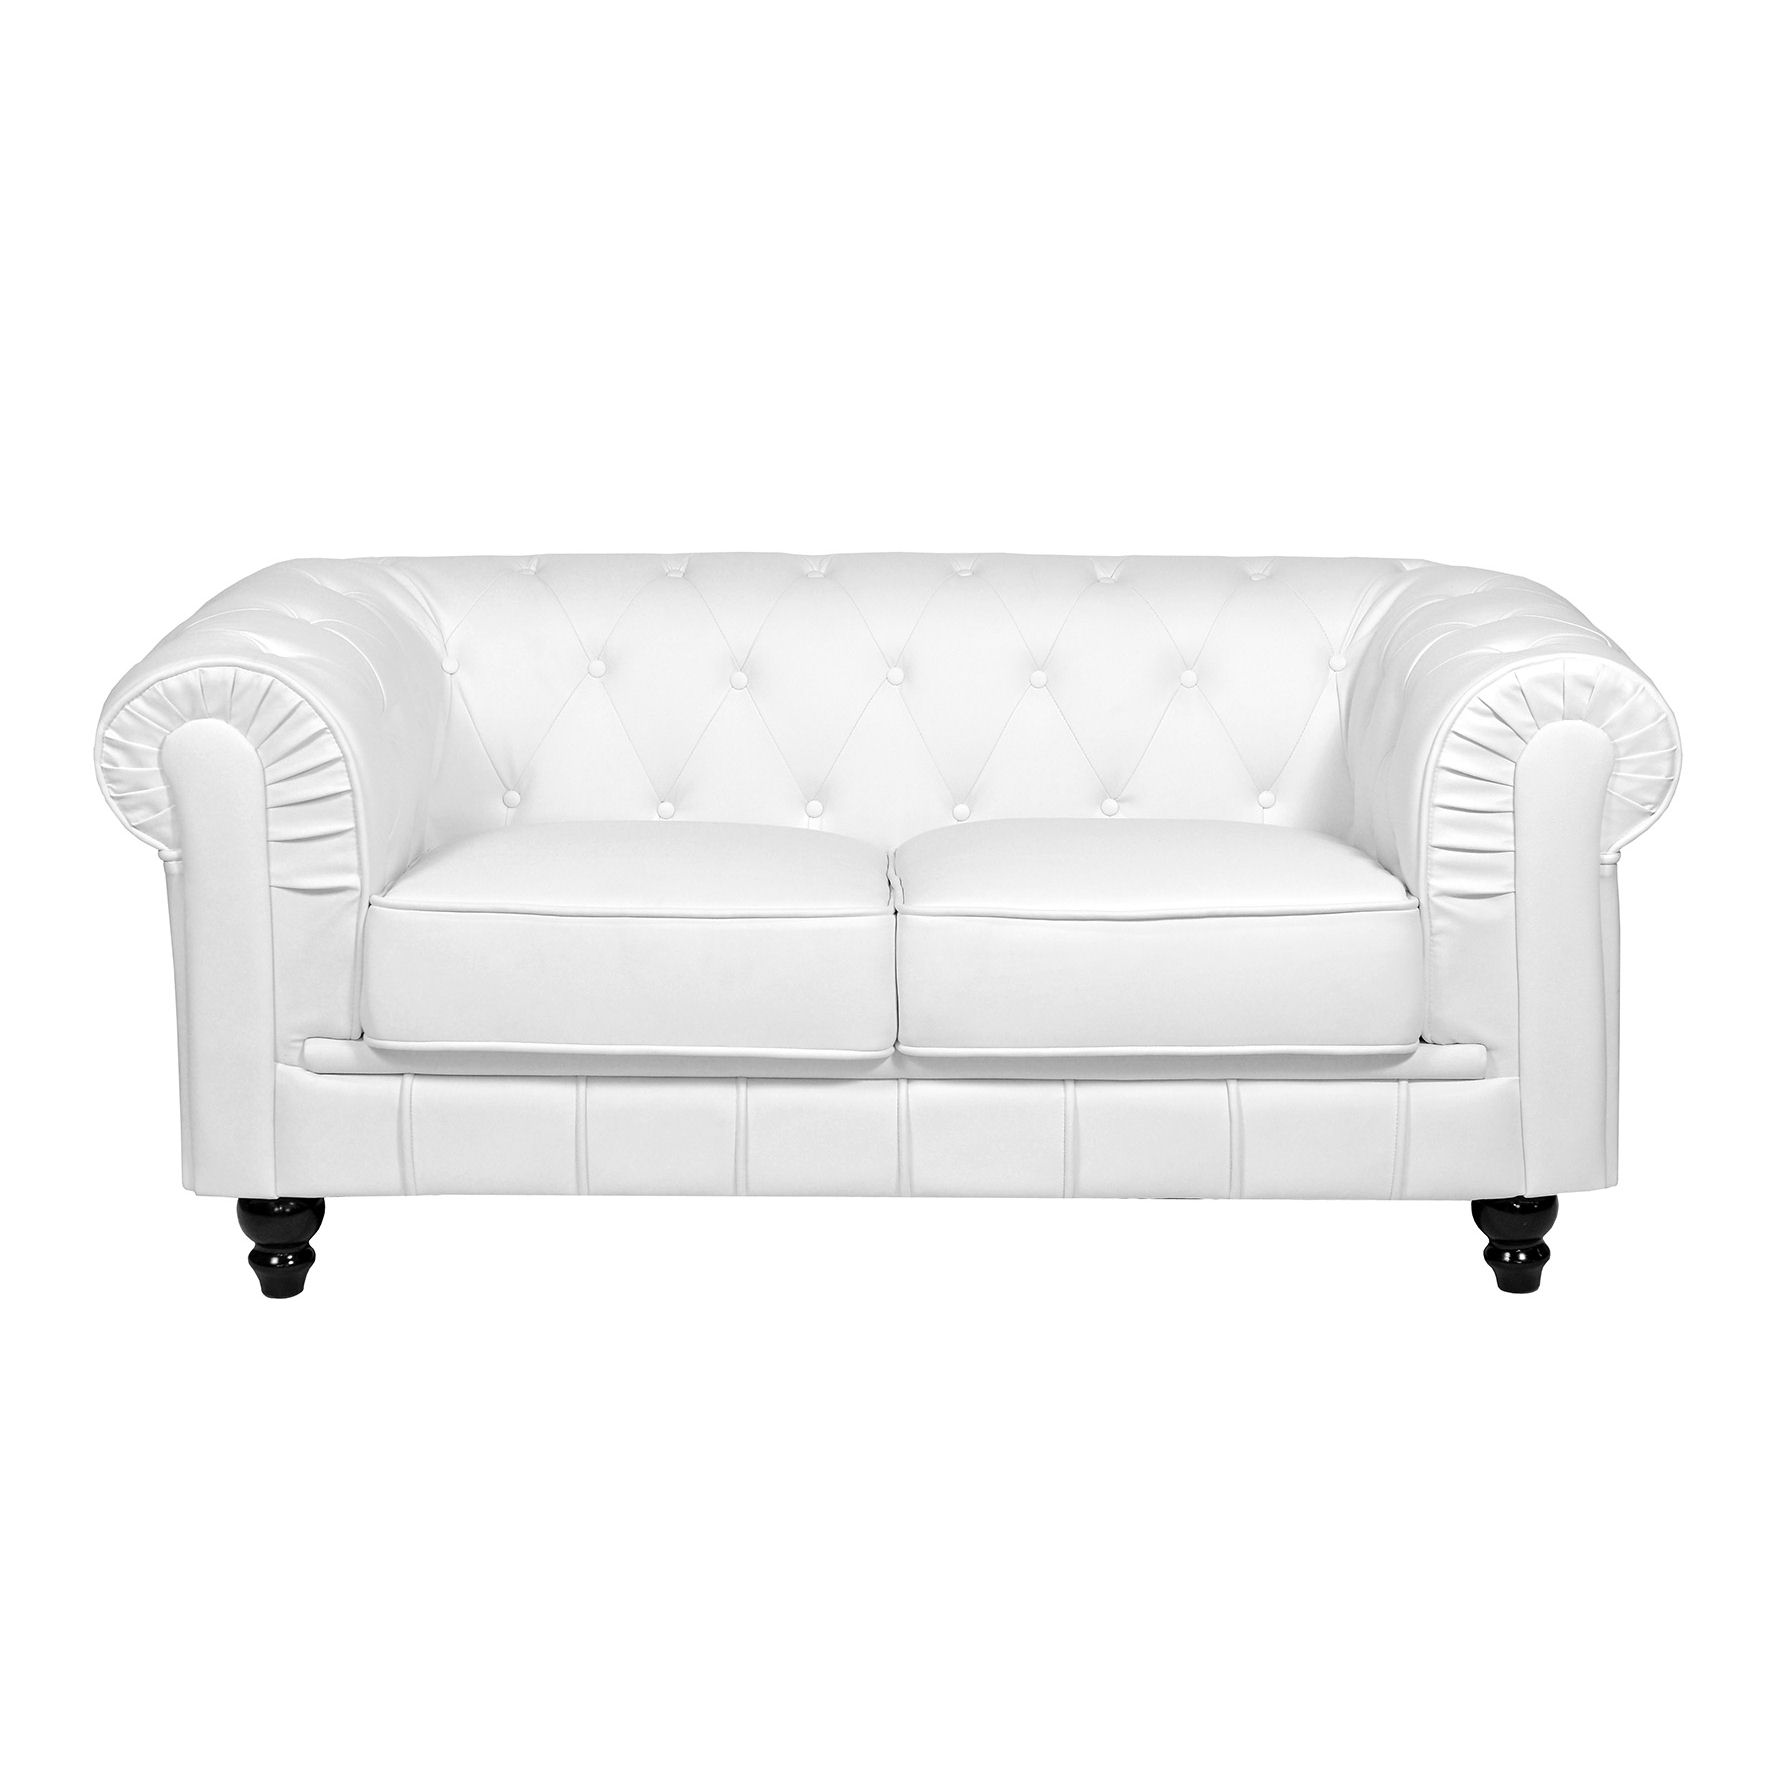 deco in paris canape 2 places blanc chesterfield can. Black Bedroom Furniture Sets. Home Design Ideas